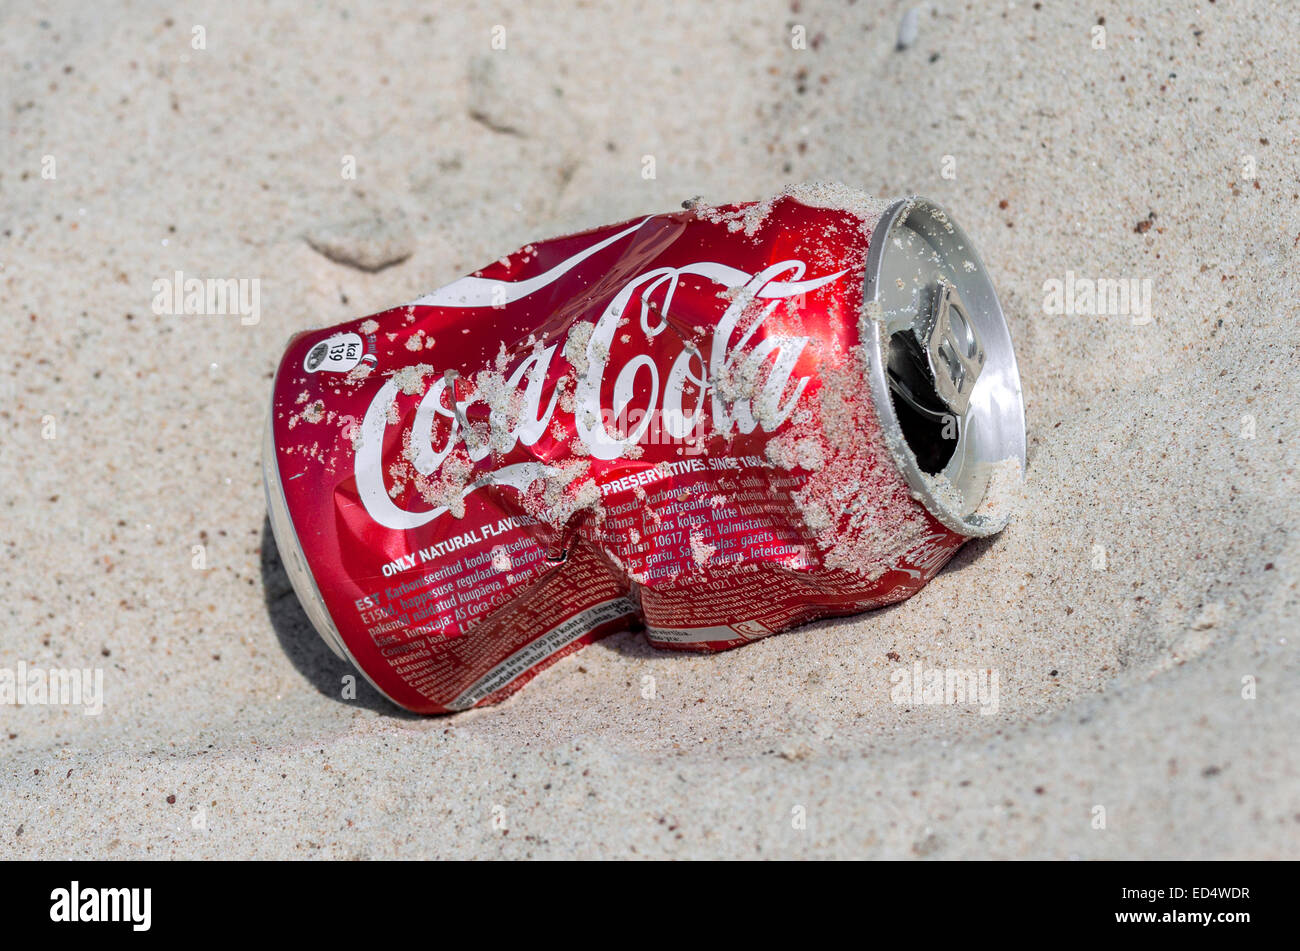 Photo of empty and crashed Coca-Cola can lying on the beach sand - Stock Image